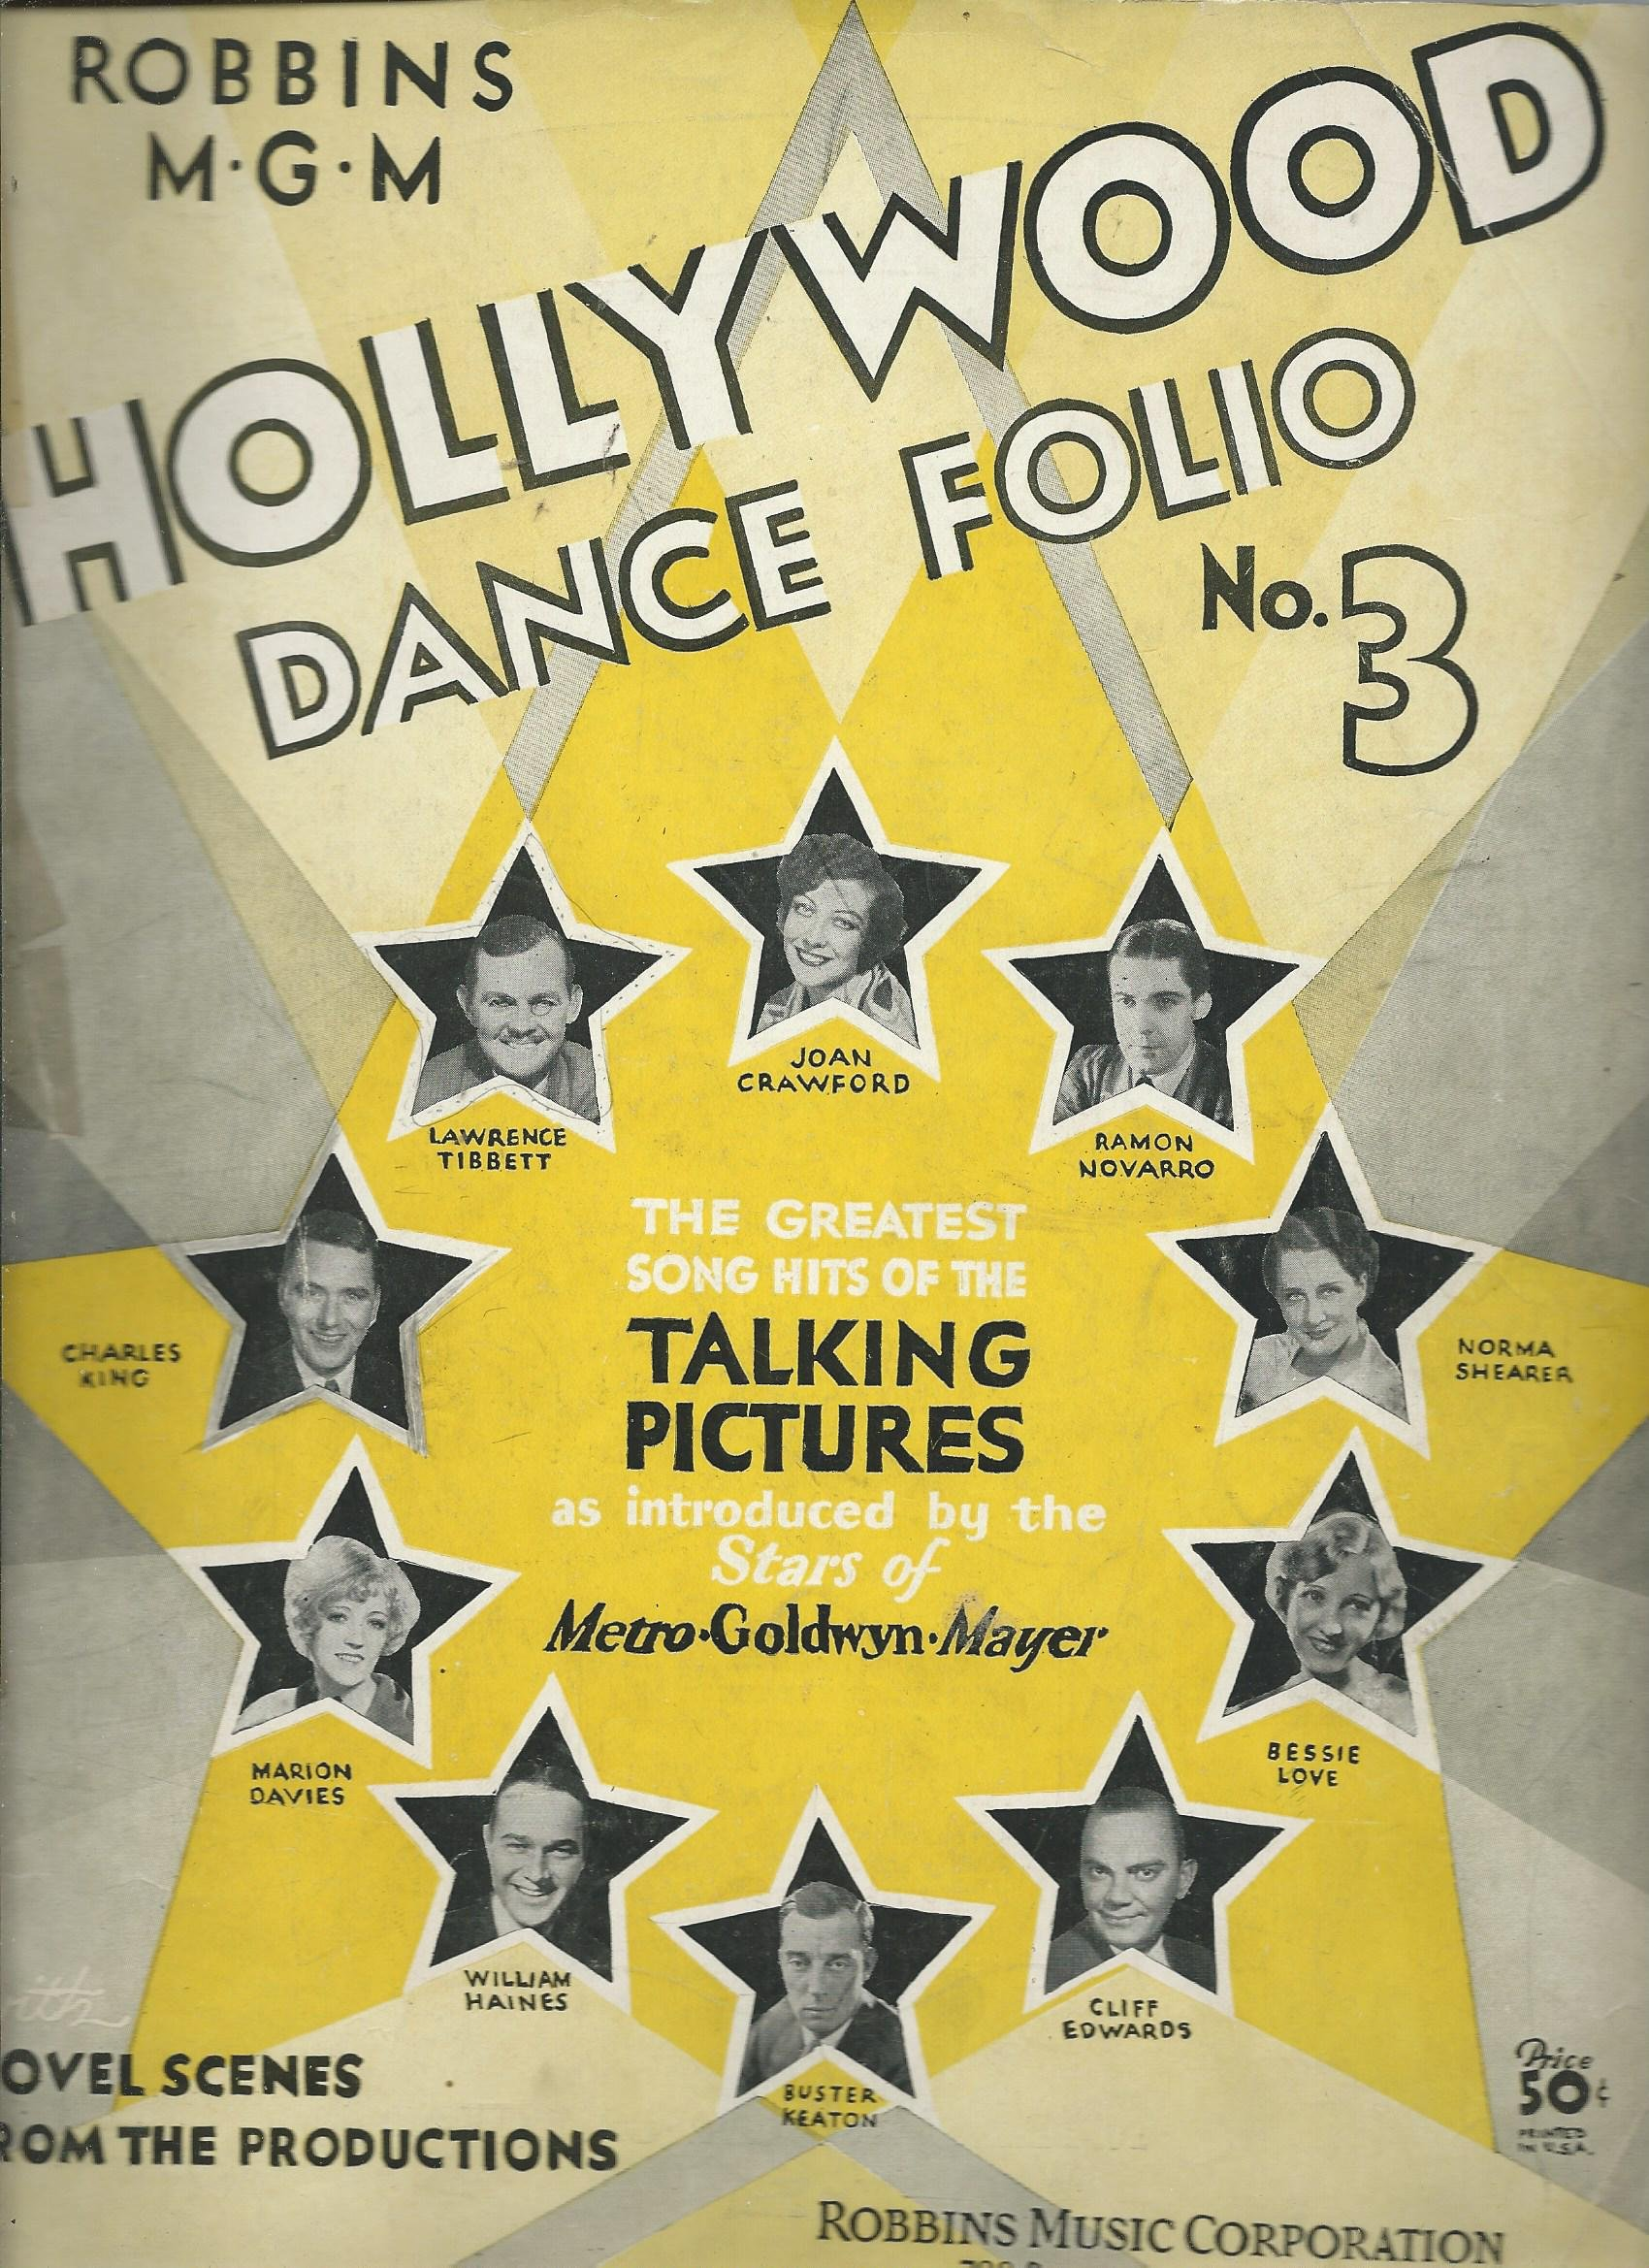 Hollywood Dance Folio No 3: The Greatest Hits of Talking Pictures (Metro Goldwin Mayer) Sheet Music